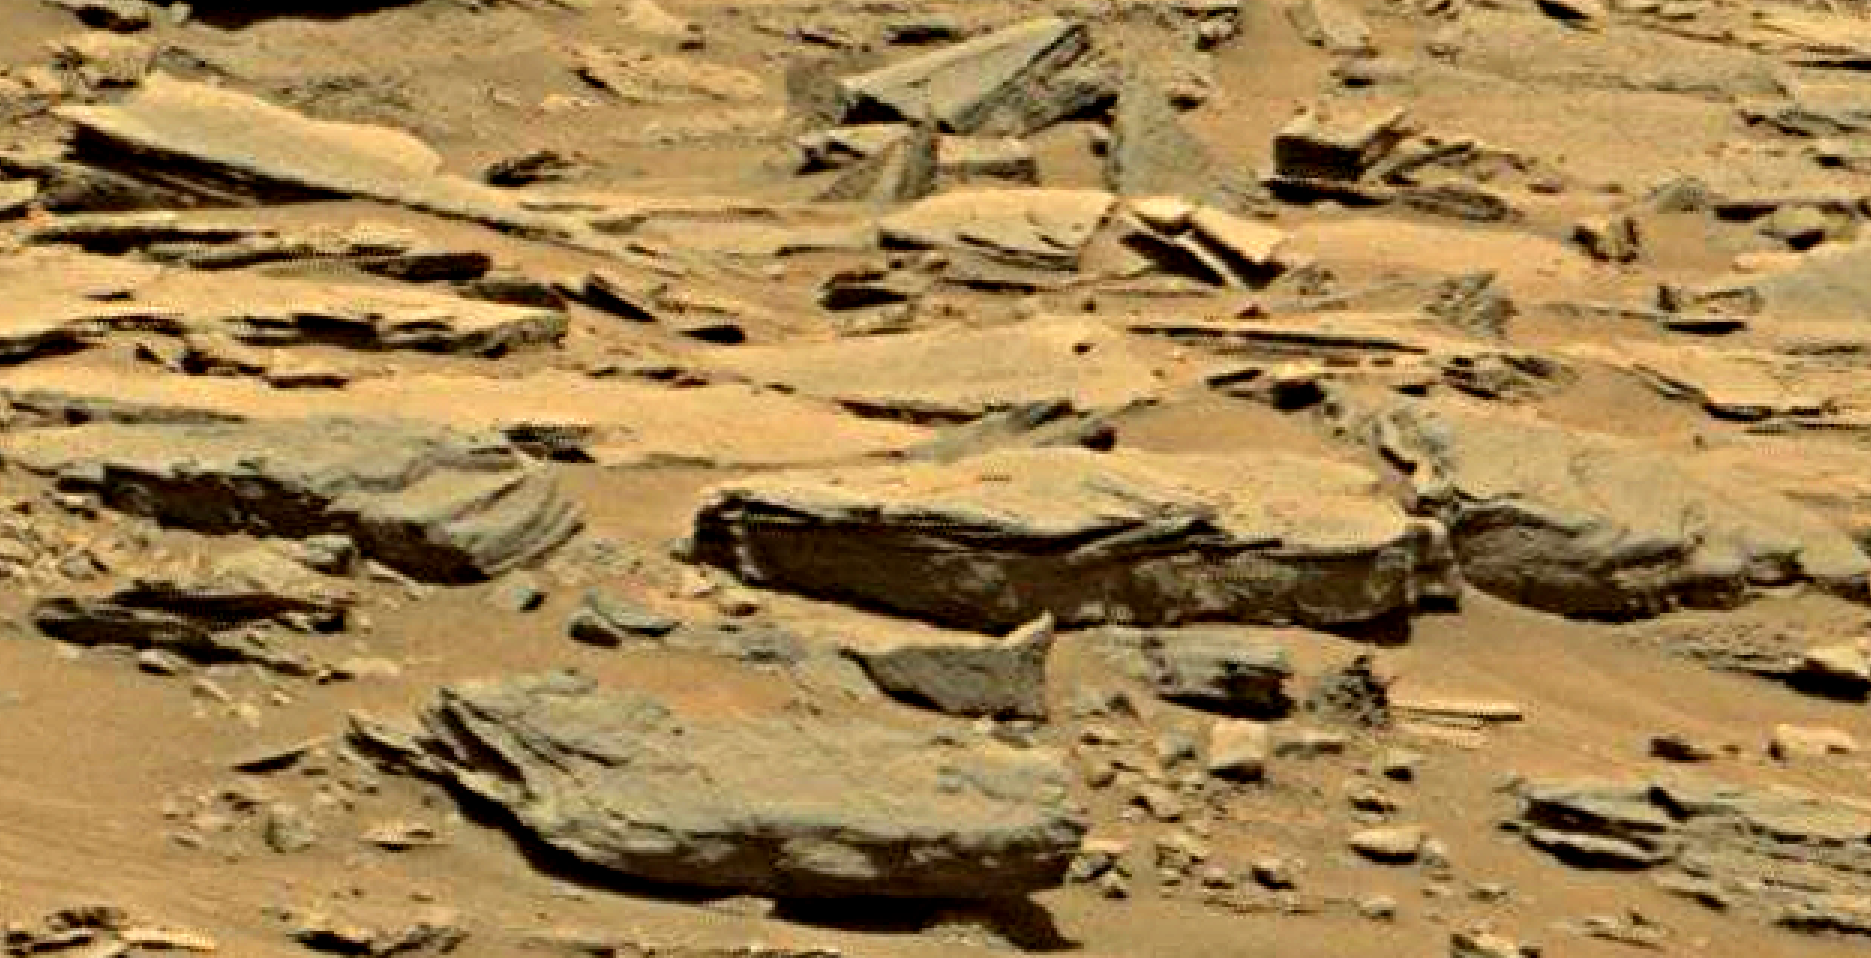 mars sol 1353 anomaly-artifacts 34 was life on mars